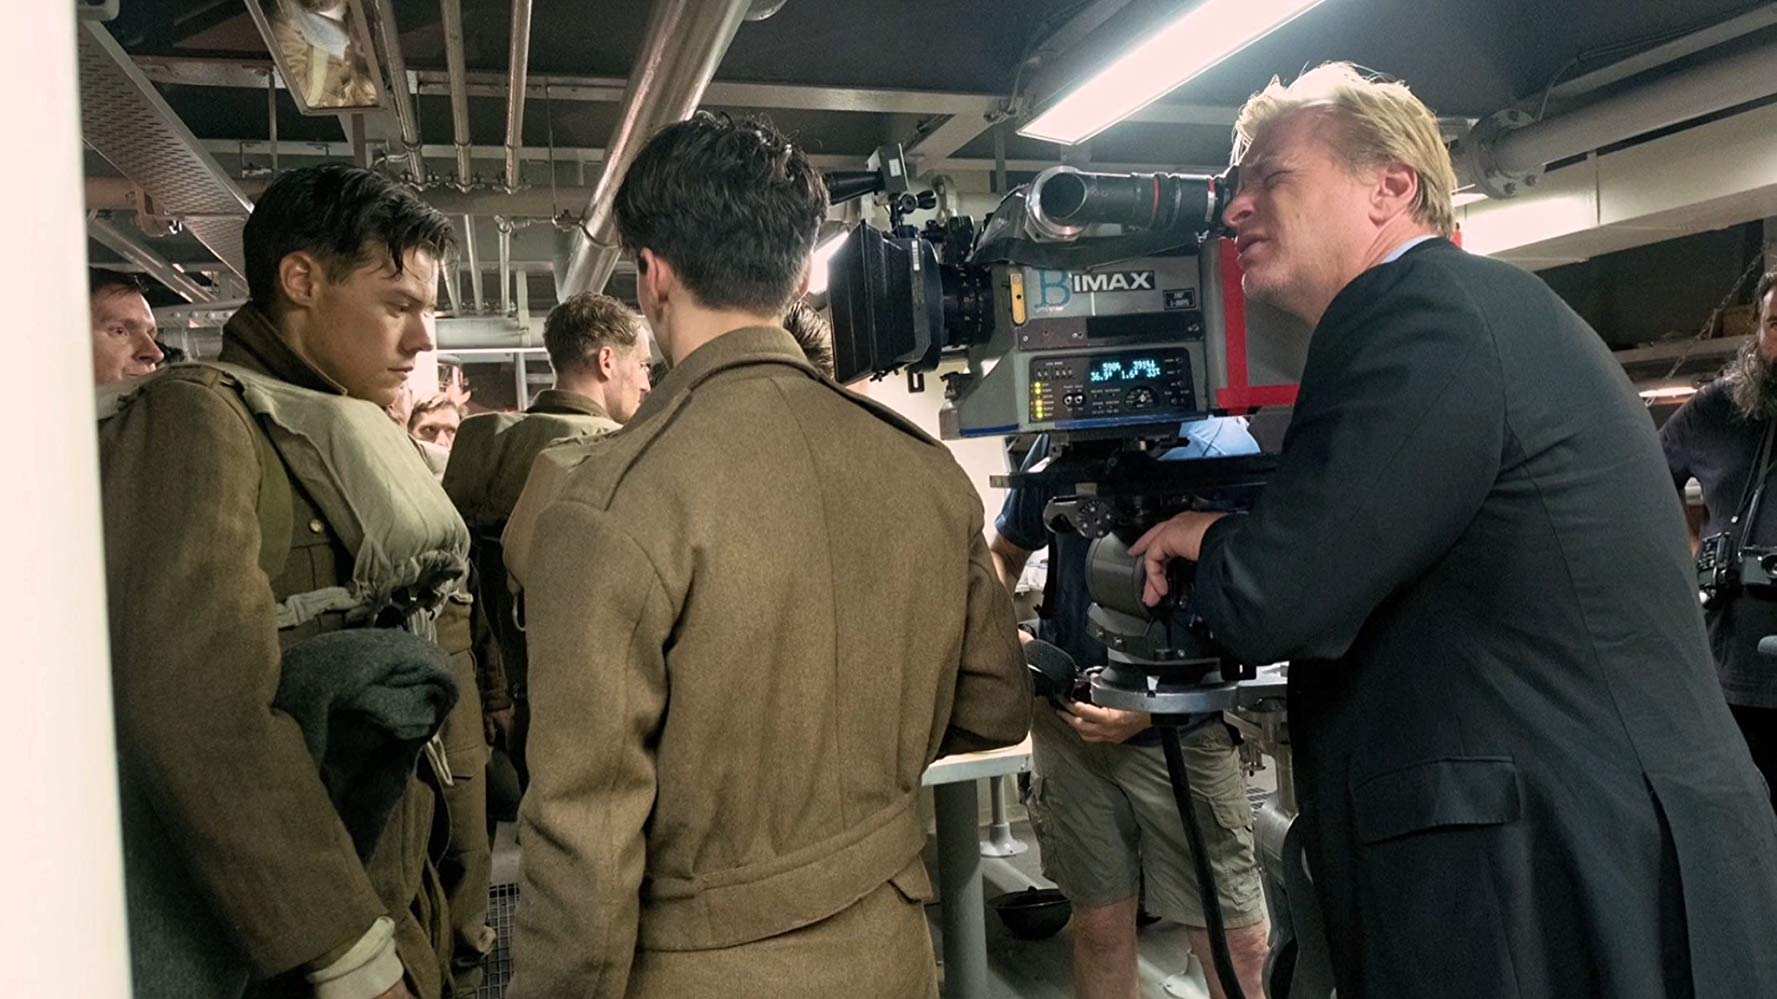 Dunkirk (2017) - Behind the Scenes